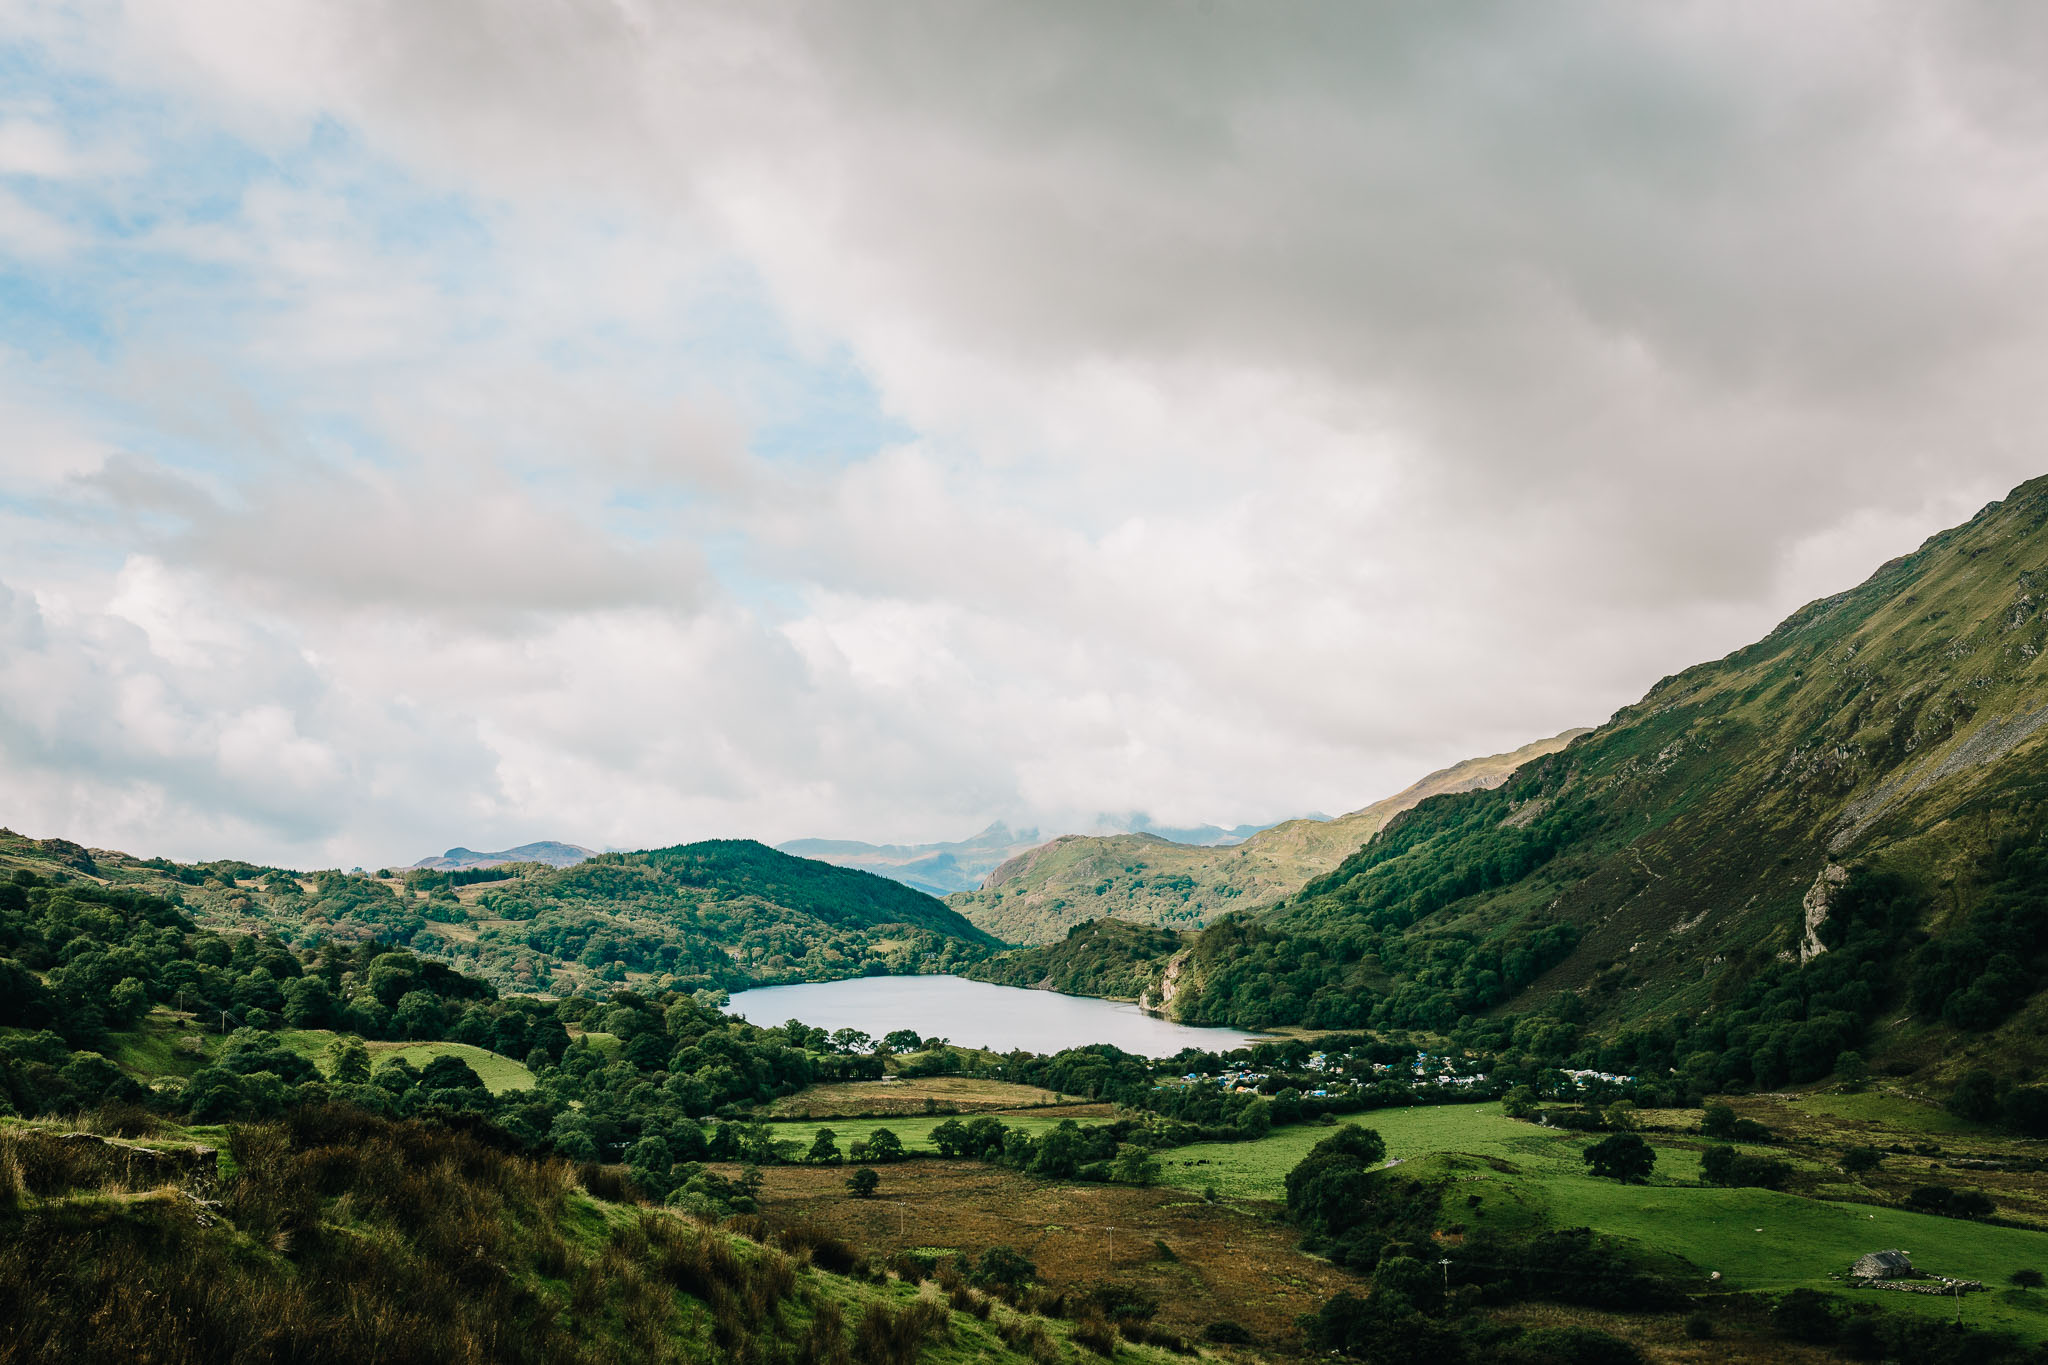 LANDSCAPE PHOTO OF LLYN GWYNANT IN SNOWDONIA NATIONAL PARK